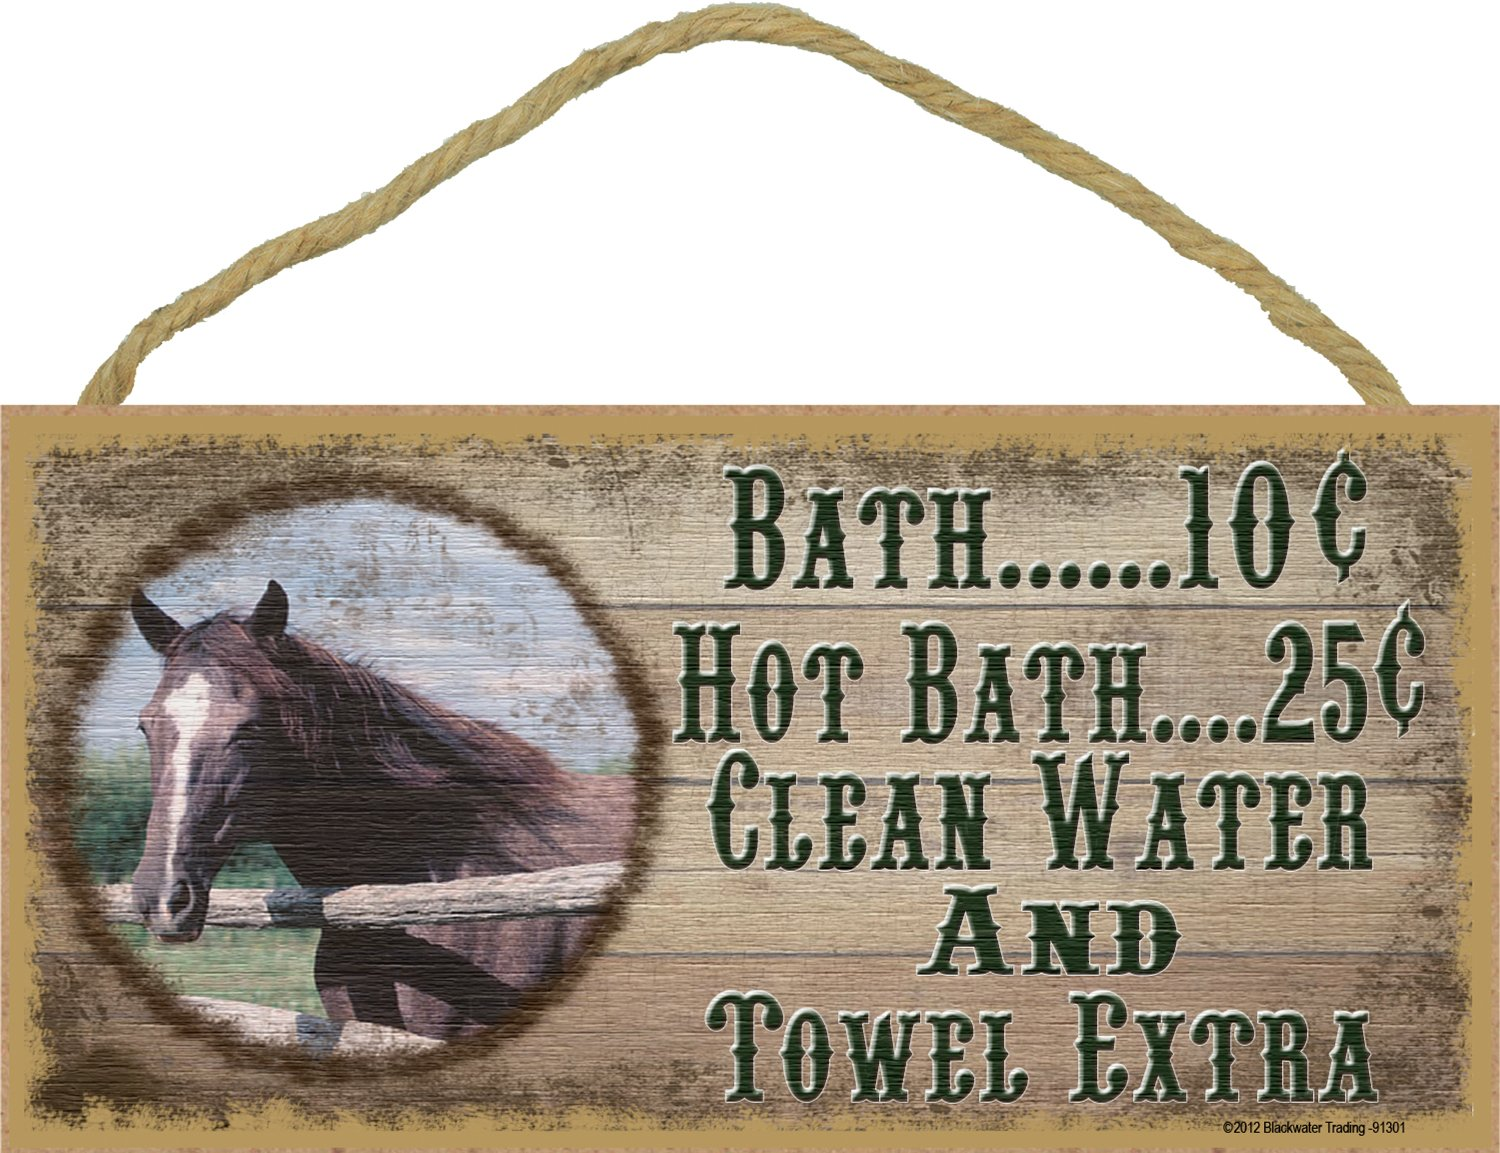 "Western Horse Bath 10 Cent Clean Water Towel Extra Sign Plaque bath Decor 5""X10"""